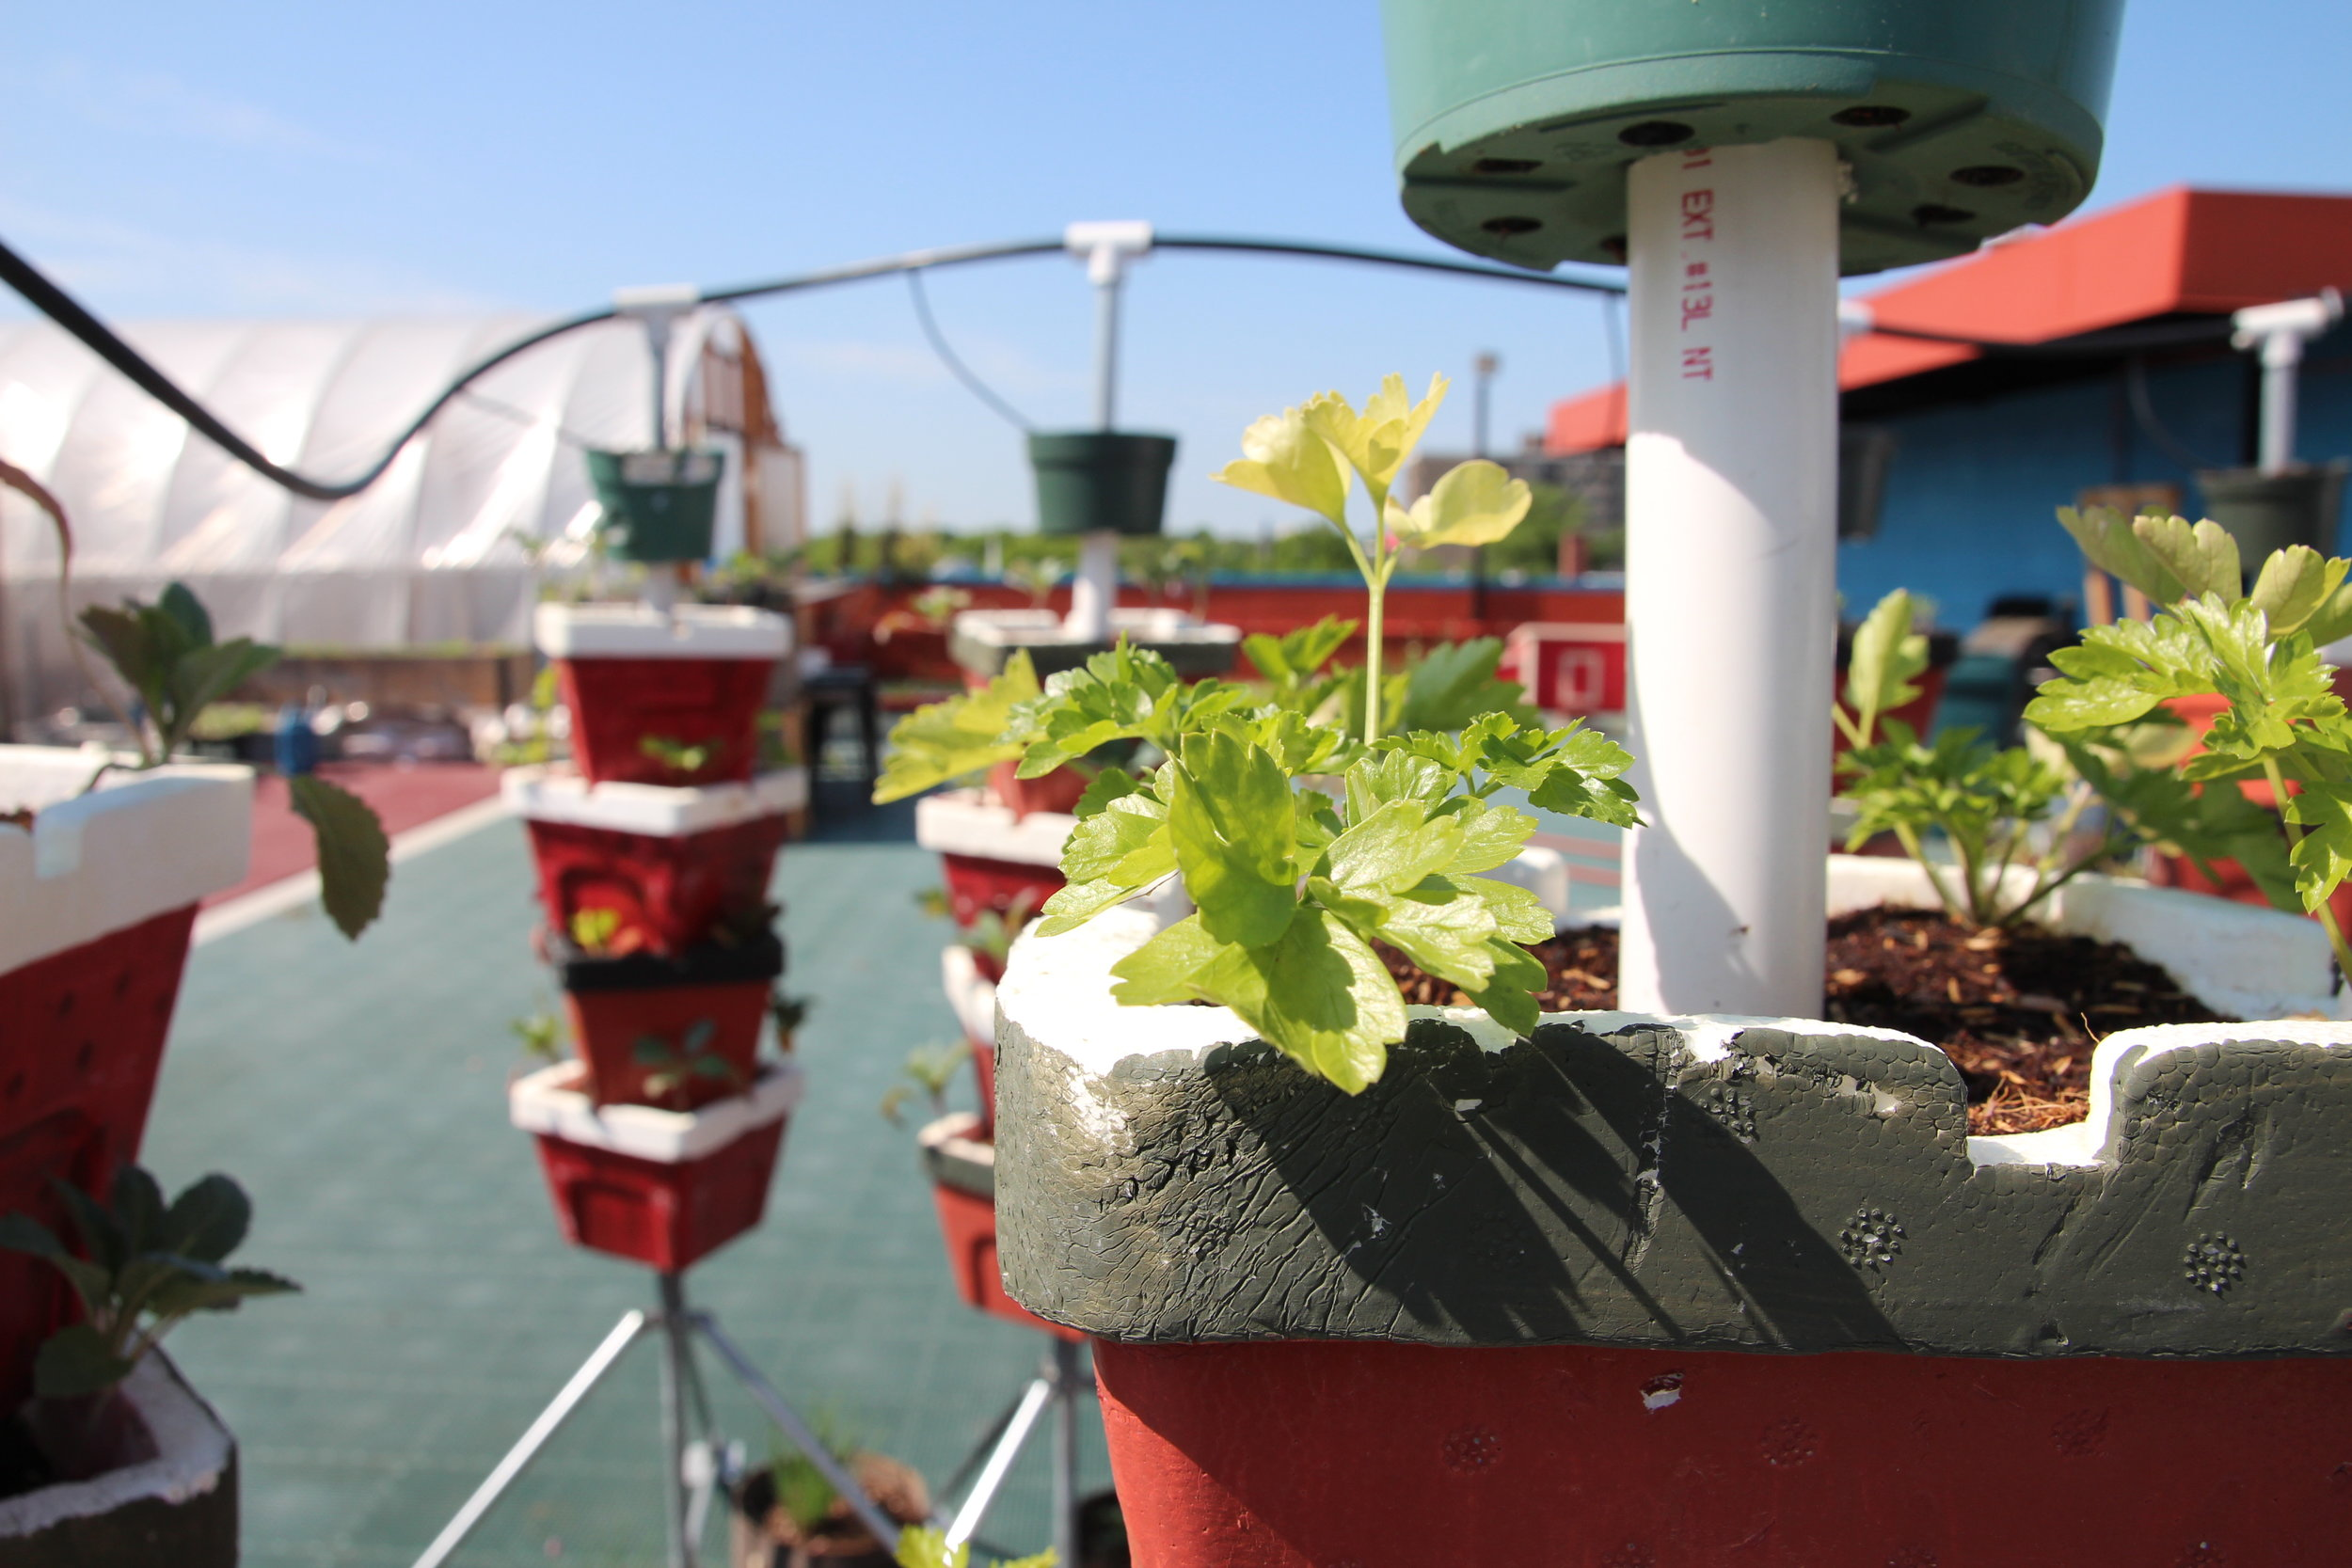 Vertical Growing with Soil  We grow vegetables and fruits, especially strawberries, in vertical towers designed to minimize pests and maximize space.   Learn More about our Veg Towers